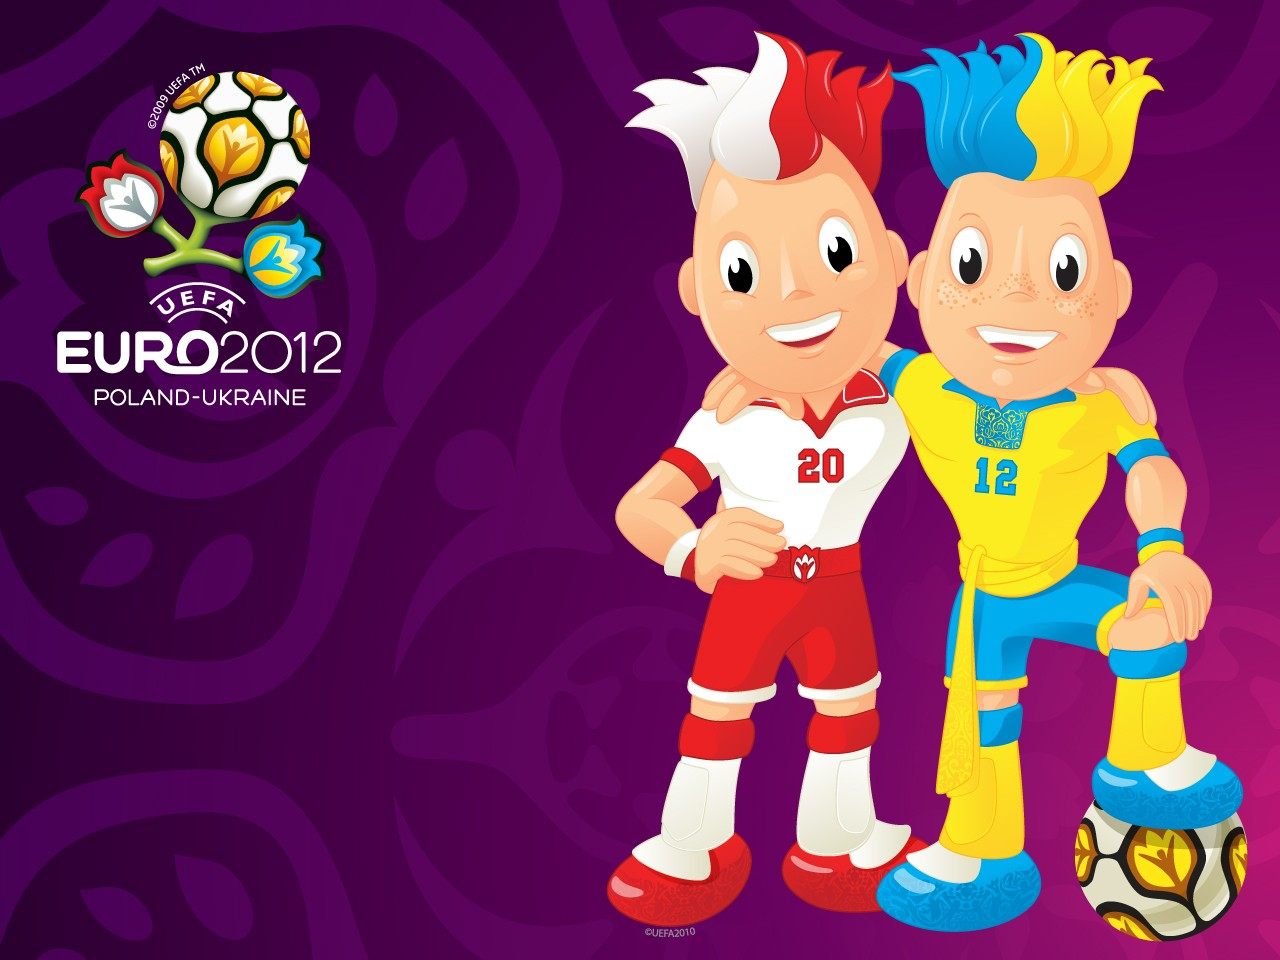 EURO 2012 Wallpapers 1